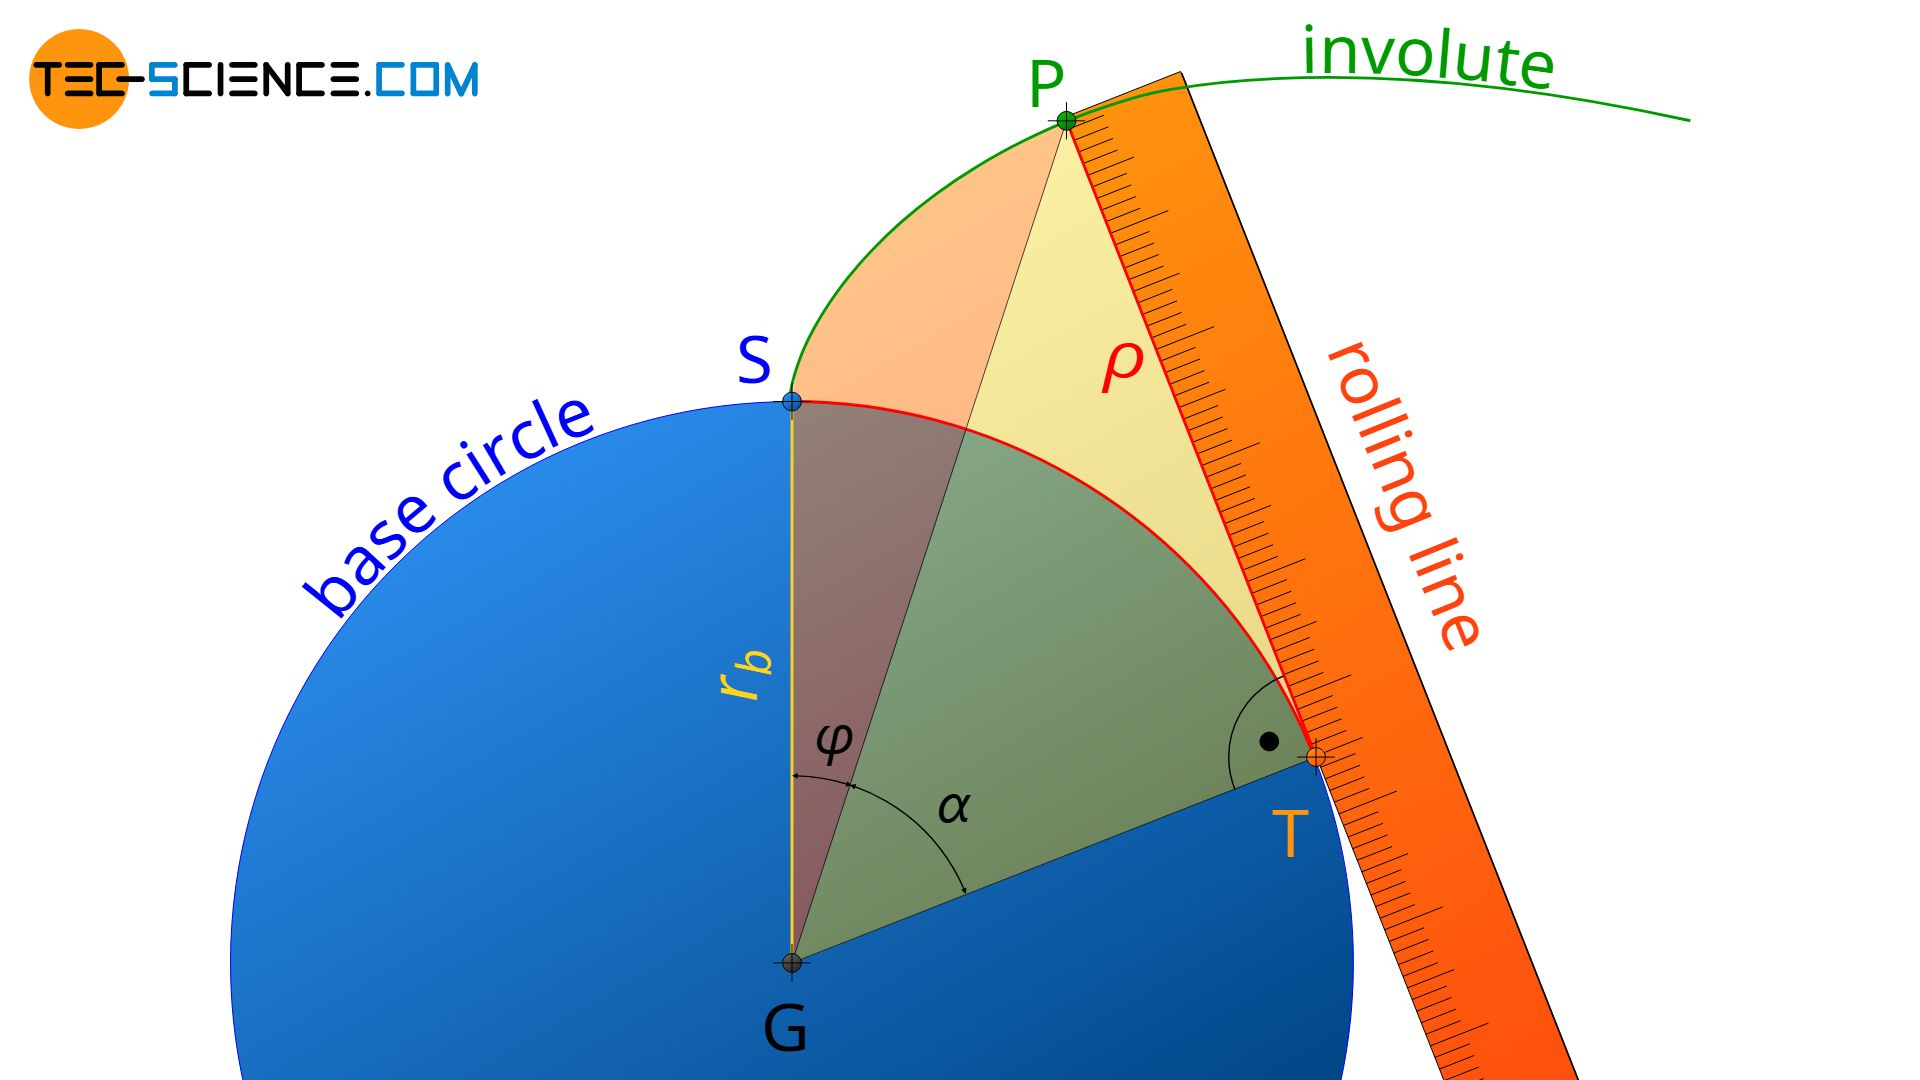 Definition of involute function